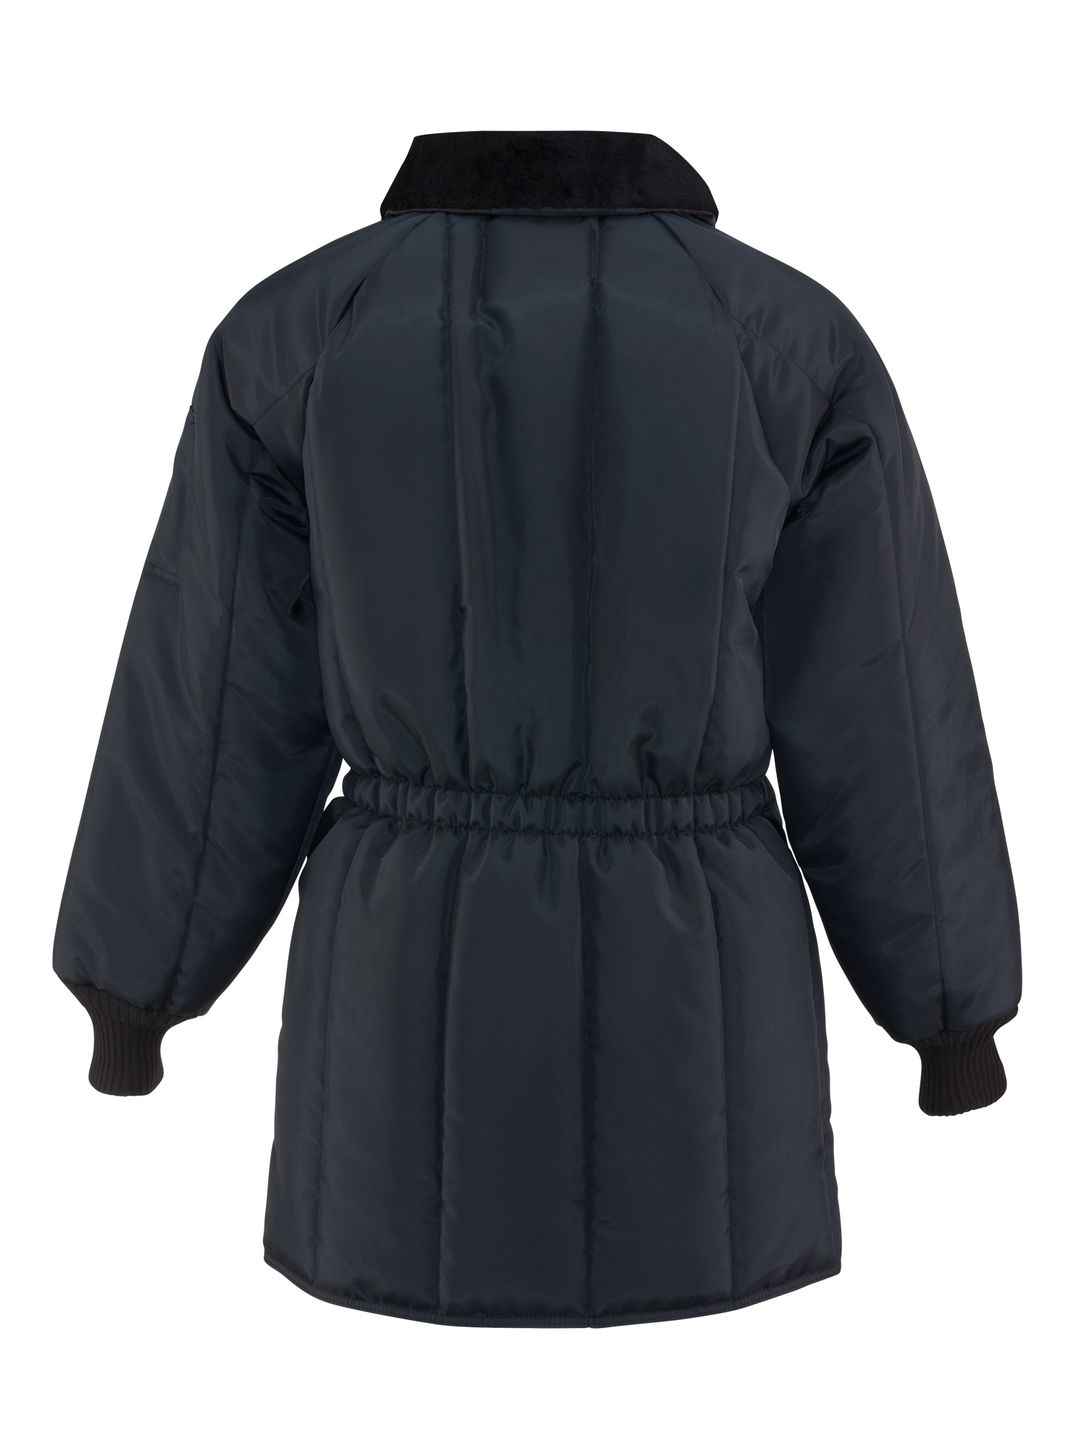 refrigiwear-0361-iron-tuff-winterseal-cold-weather-work-coat-thigh-length-back-view.jpg